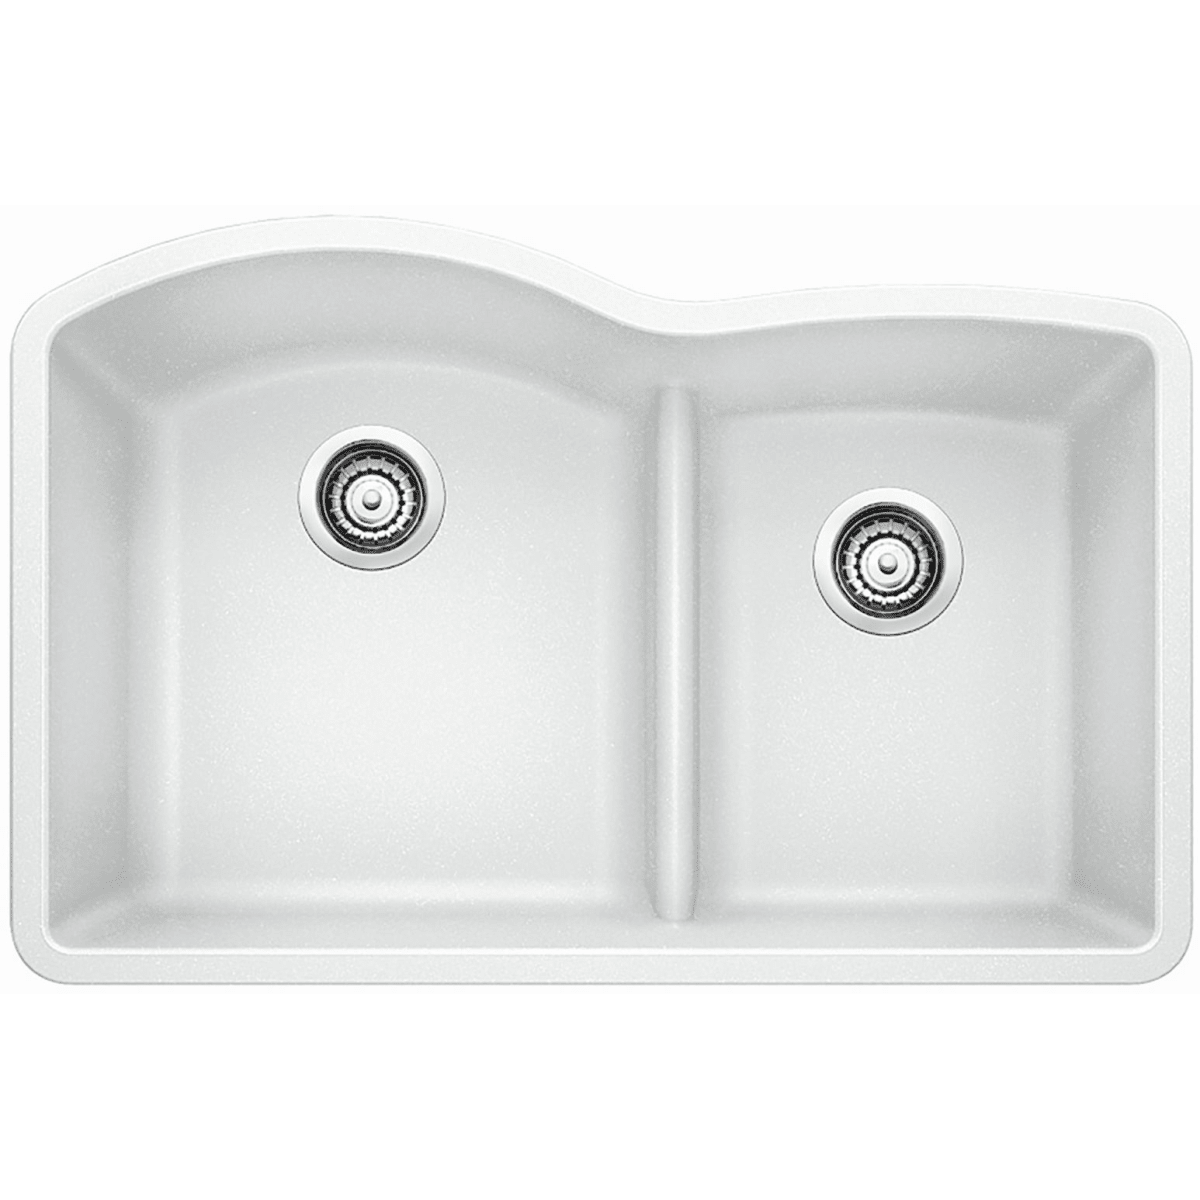 "Blanco Diamond 32"" Undermount Double Basin Composite Kitchen Sink"